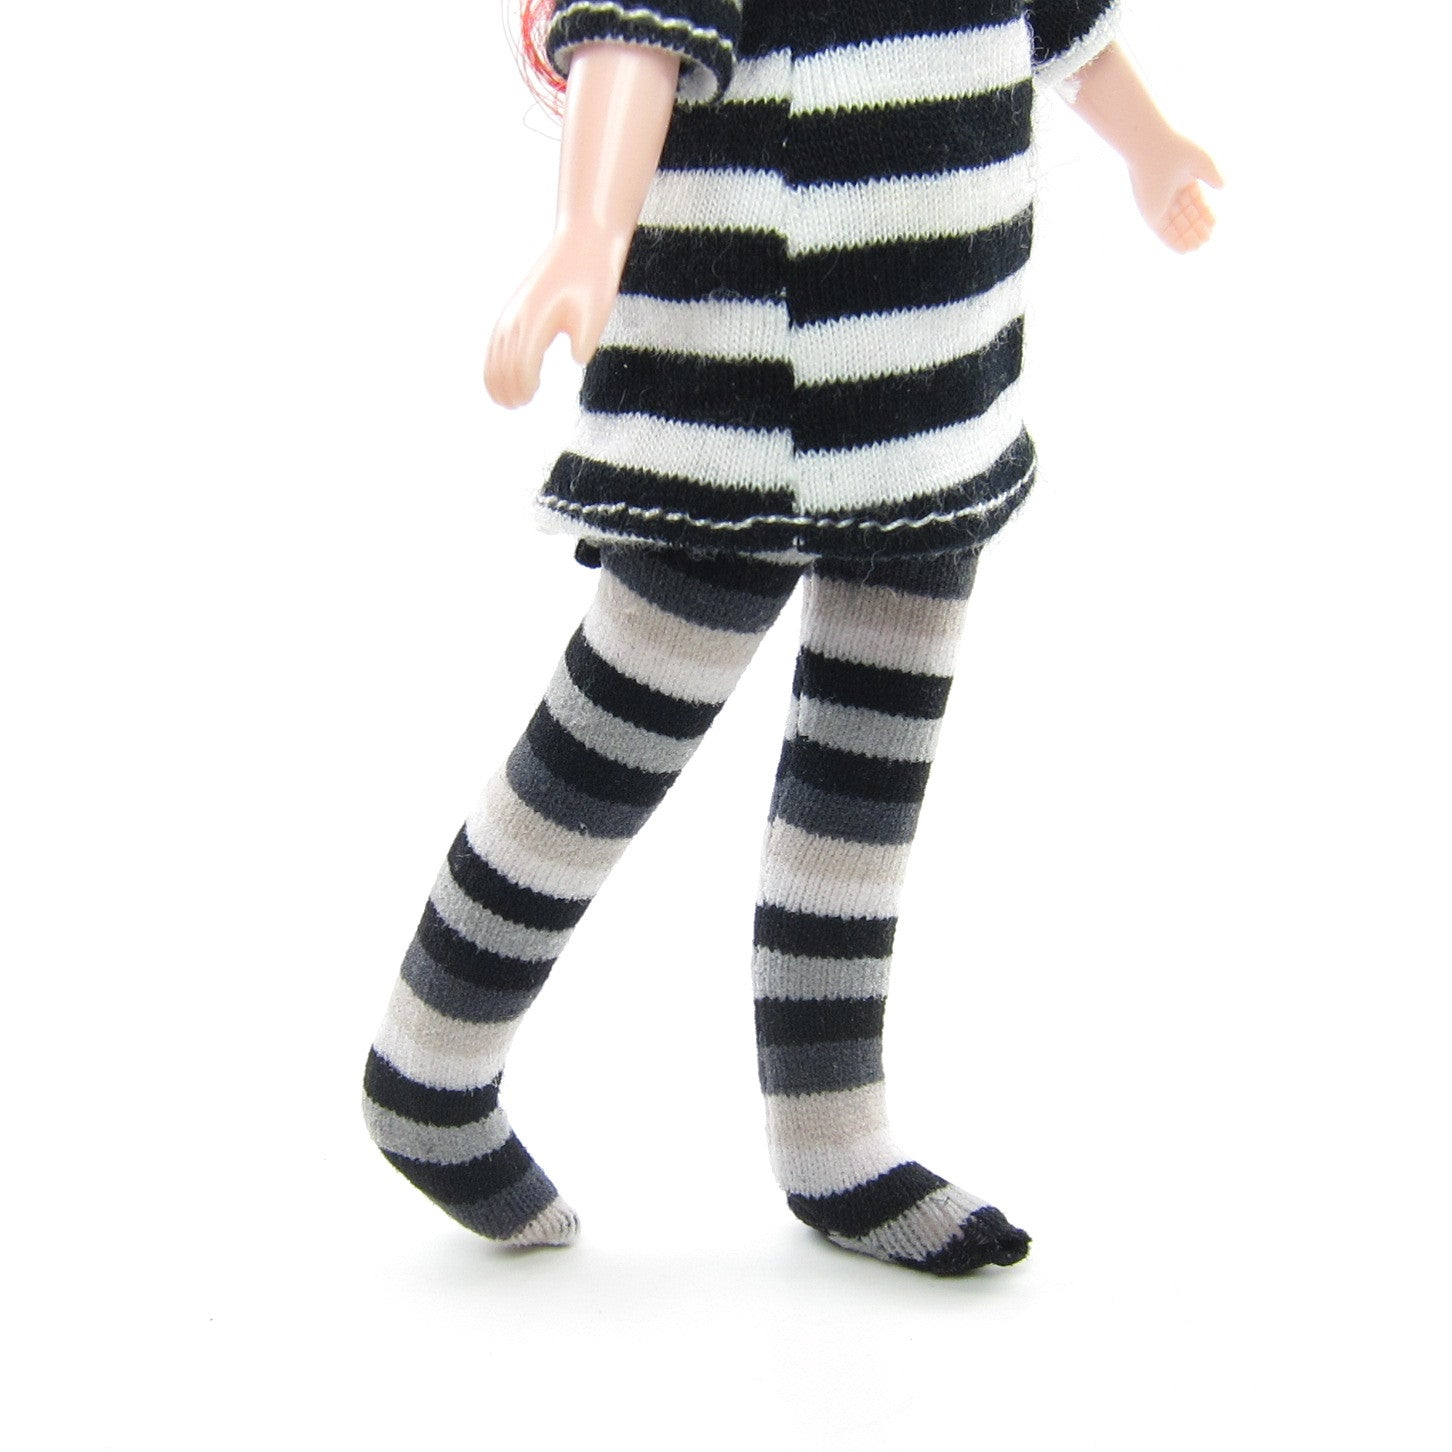 Striped stockings for Middie Blythe dolls